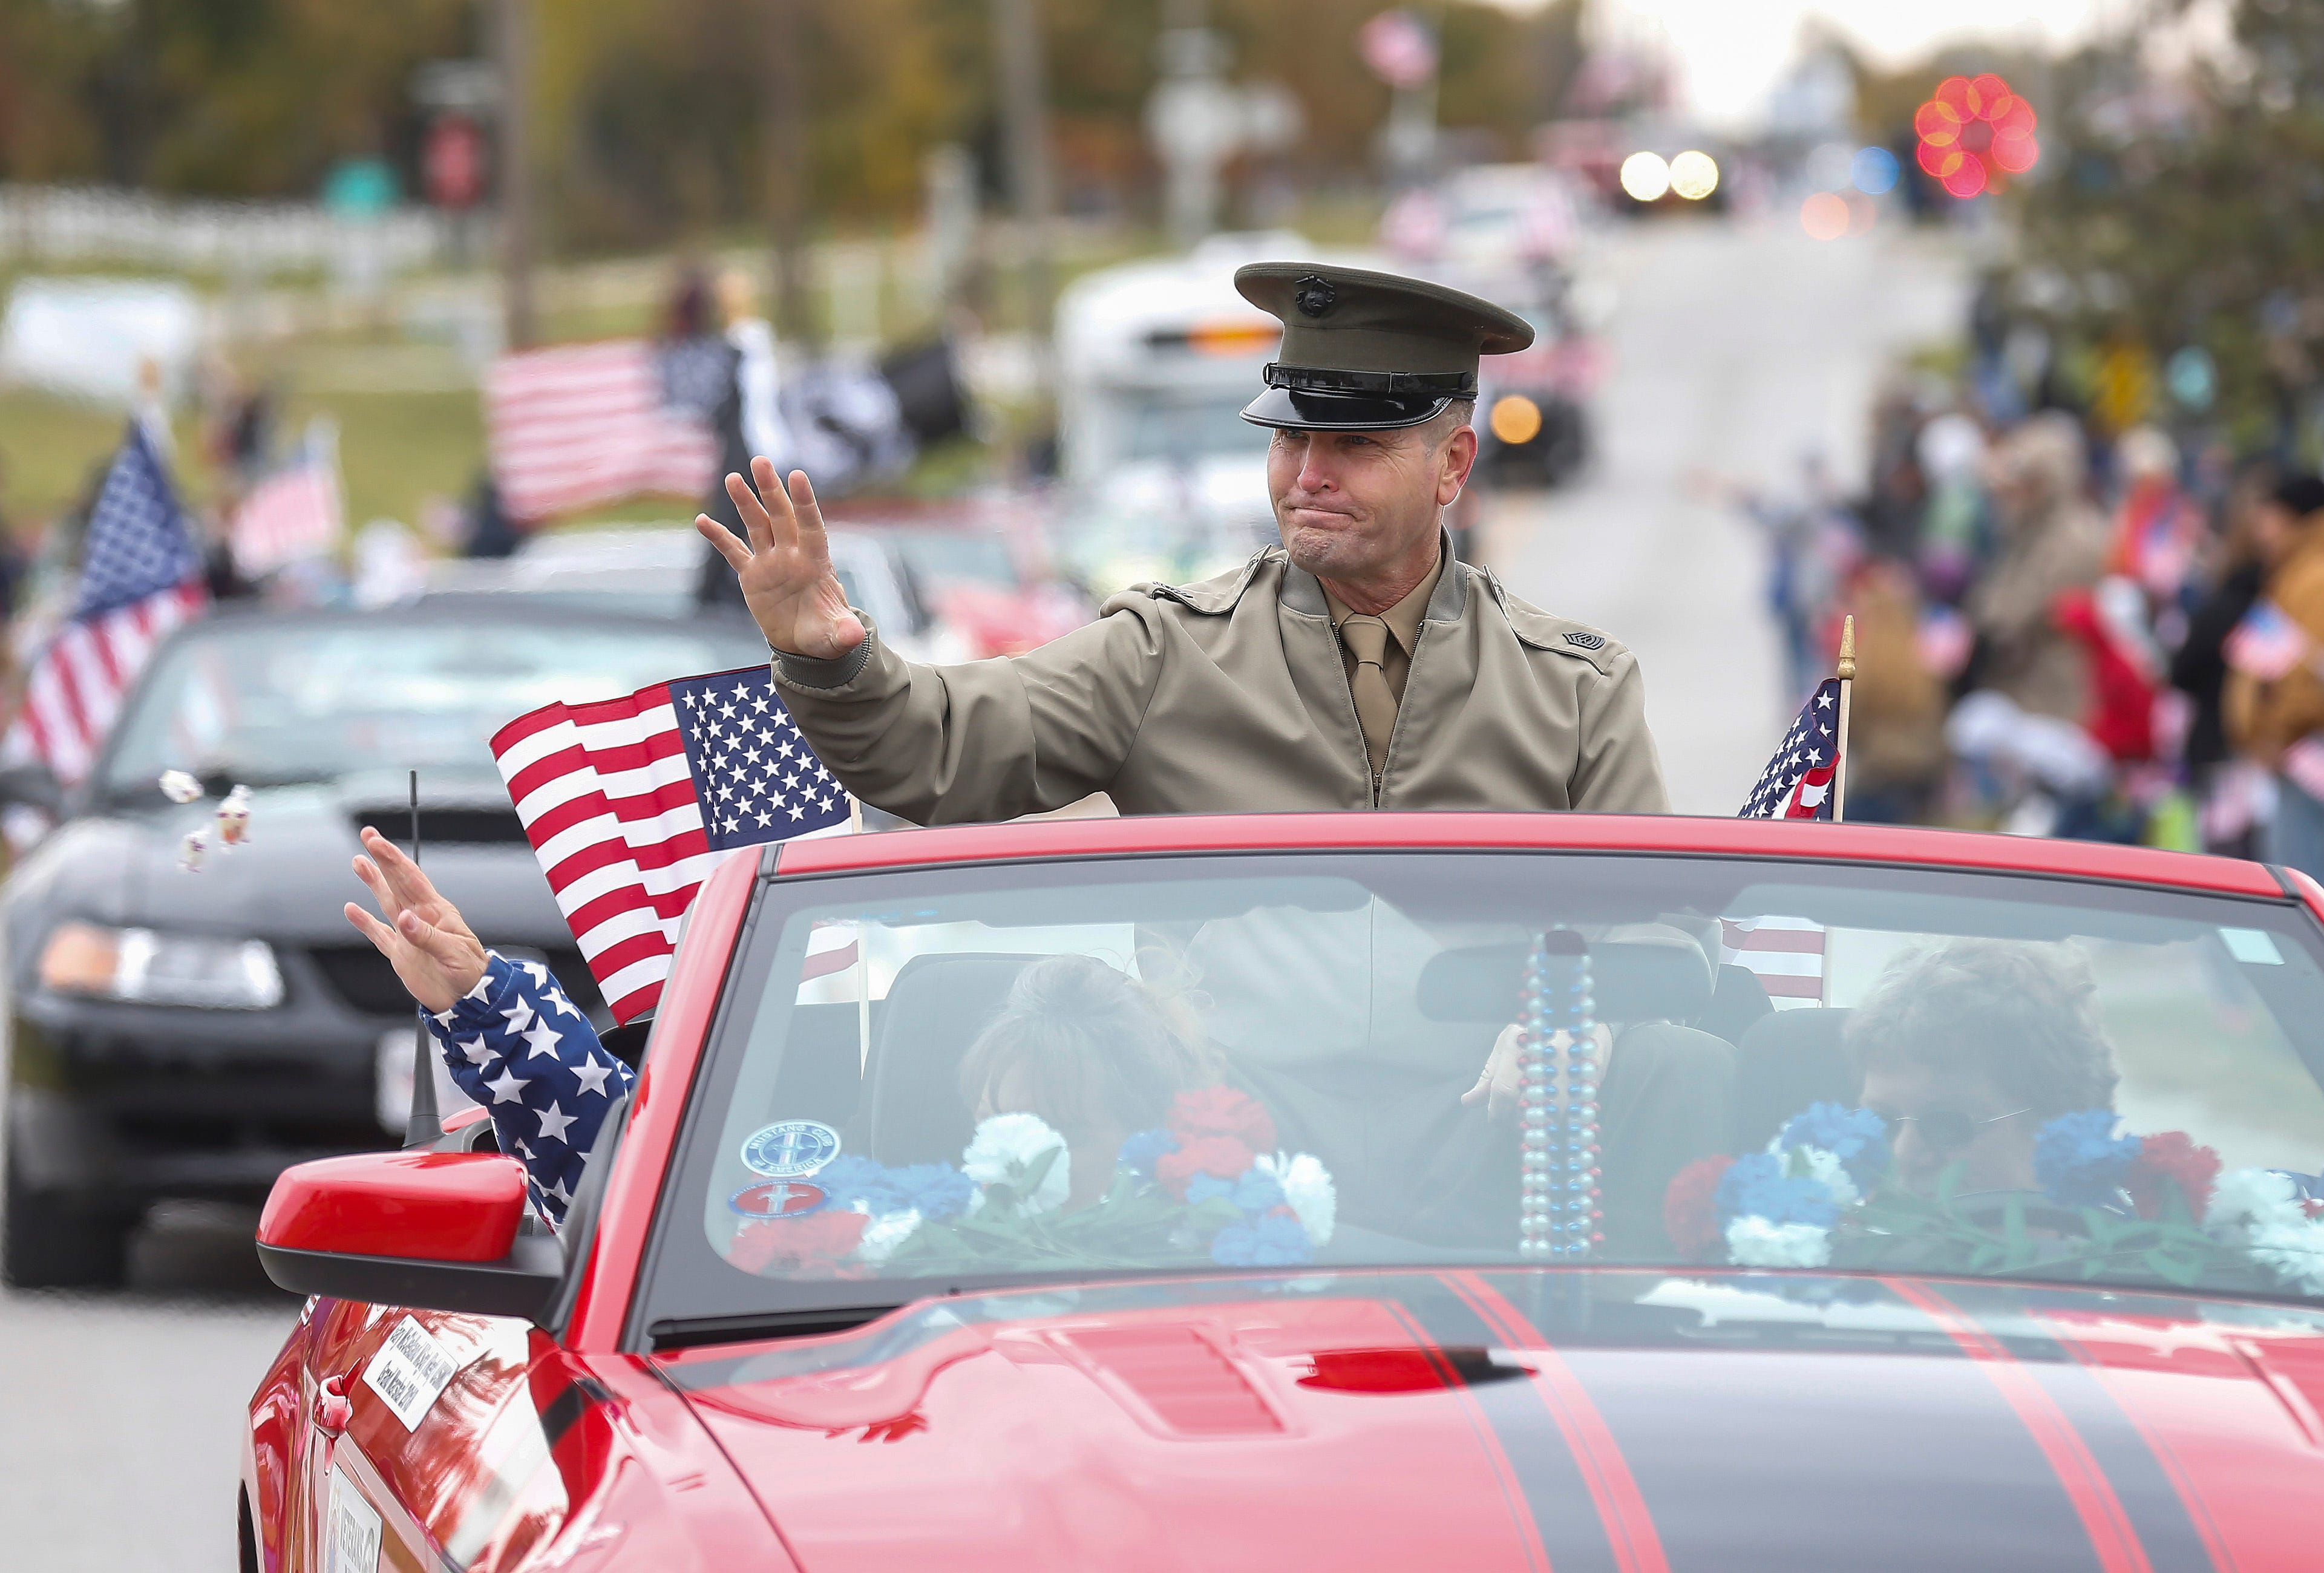 Grand Marshal of the 2nd Annual Western Greene County Veterans Day Parade retired Marine Msgt. Gary McClelland waves to the crowd in Willard for the on Saturday, Nov. 3, 2018.